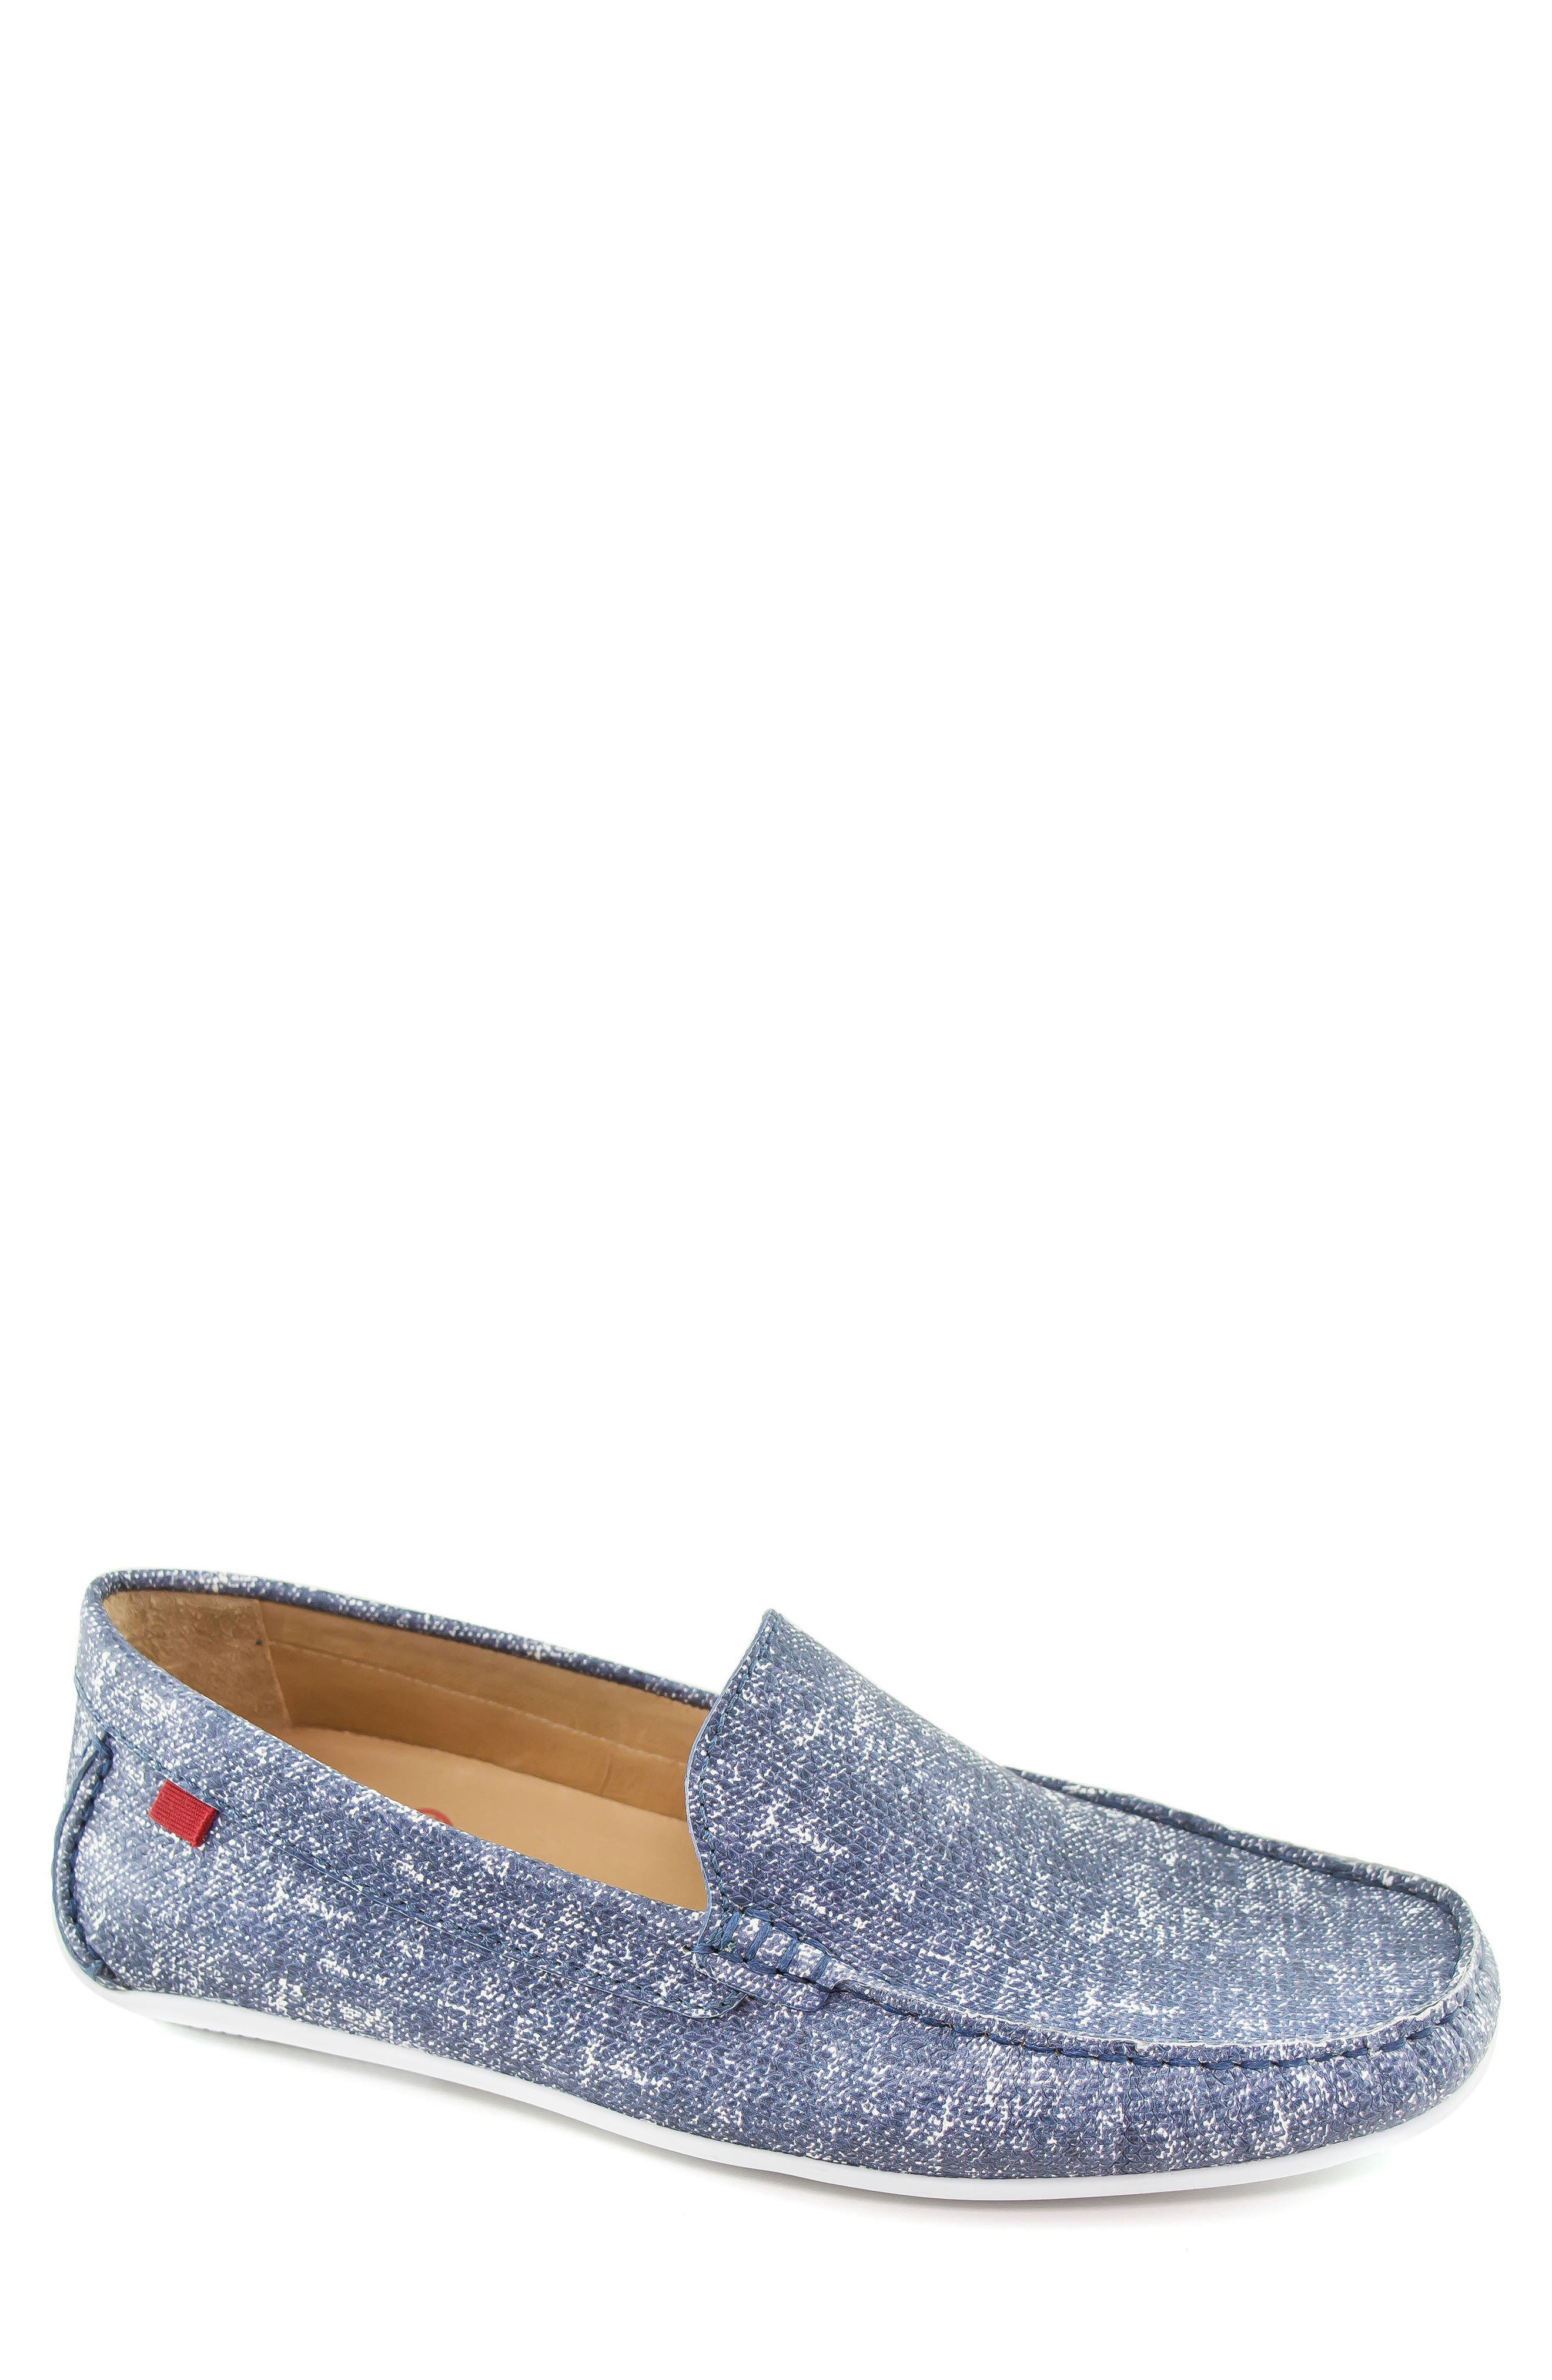 Marc Joseph New York 'Broadway' Driving Shoe (Men)